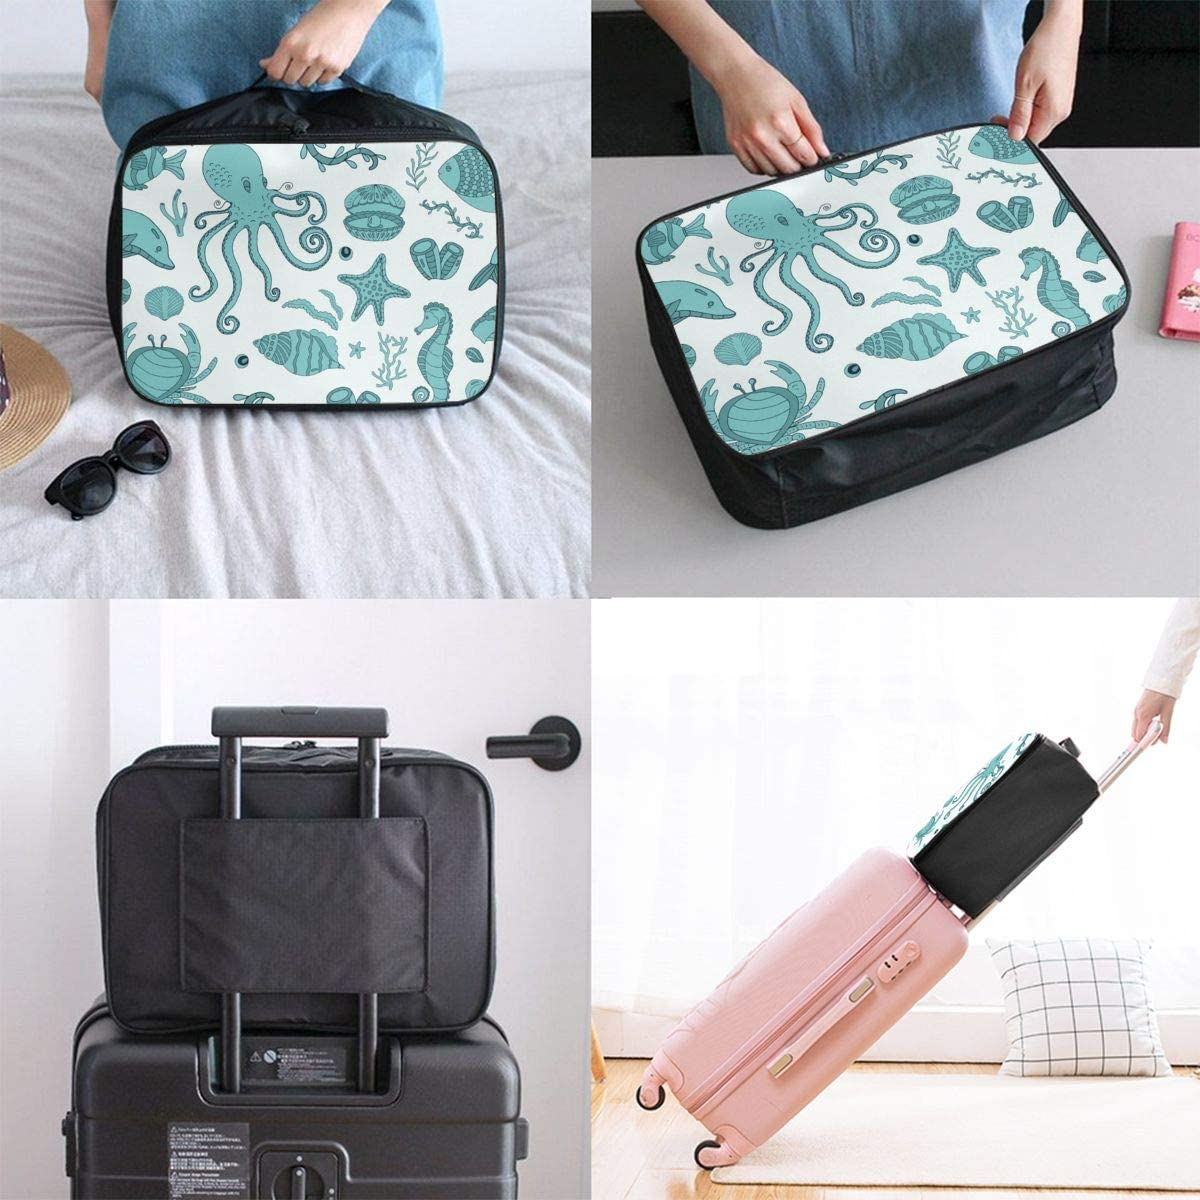 Yunshm Embroidery Dragons And Flowers Peonies Classical Asian Dragons Trolley Handbag Waterproof Unisex Large Capacity For Business Travel Storage